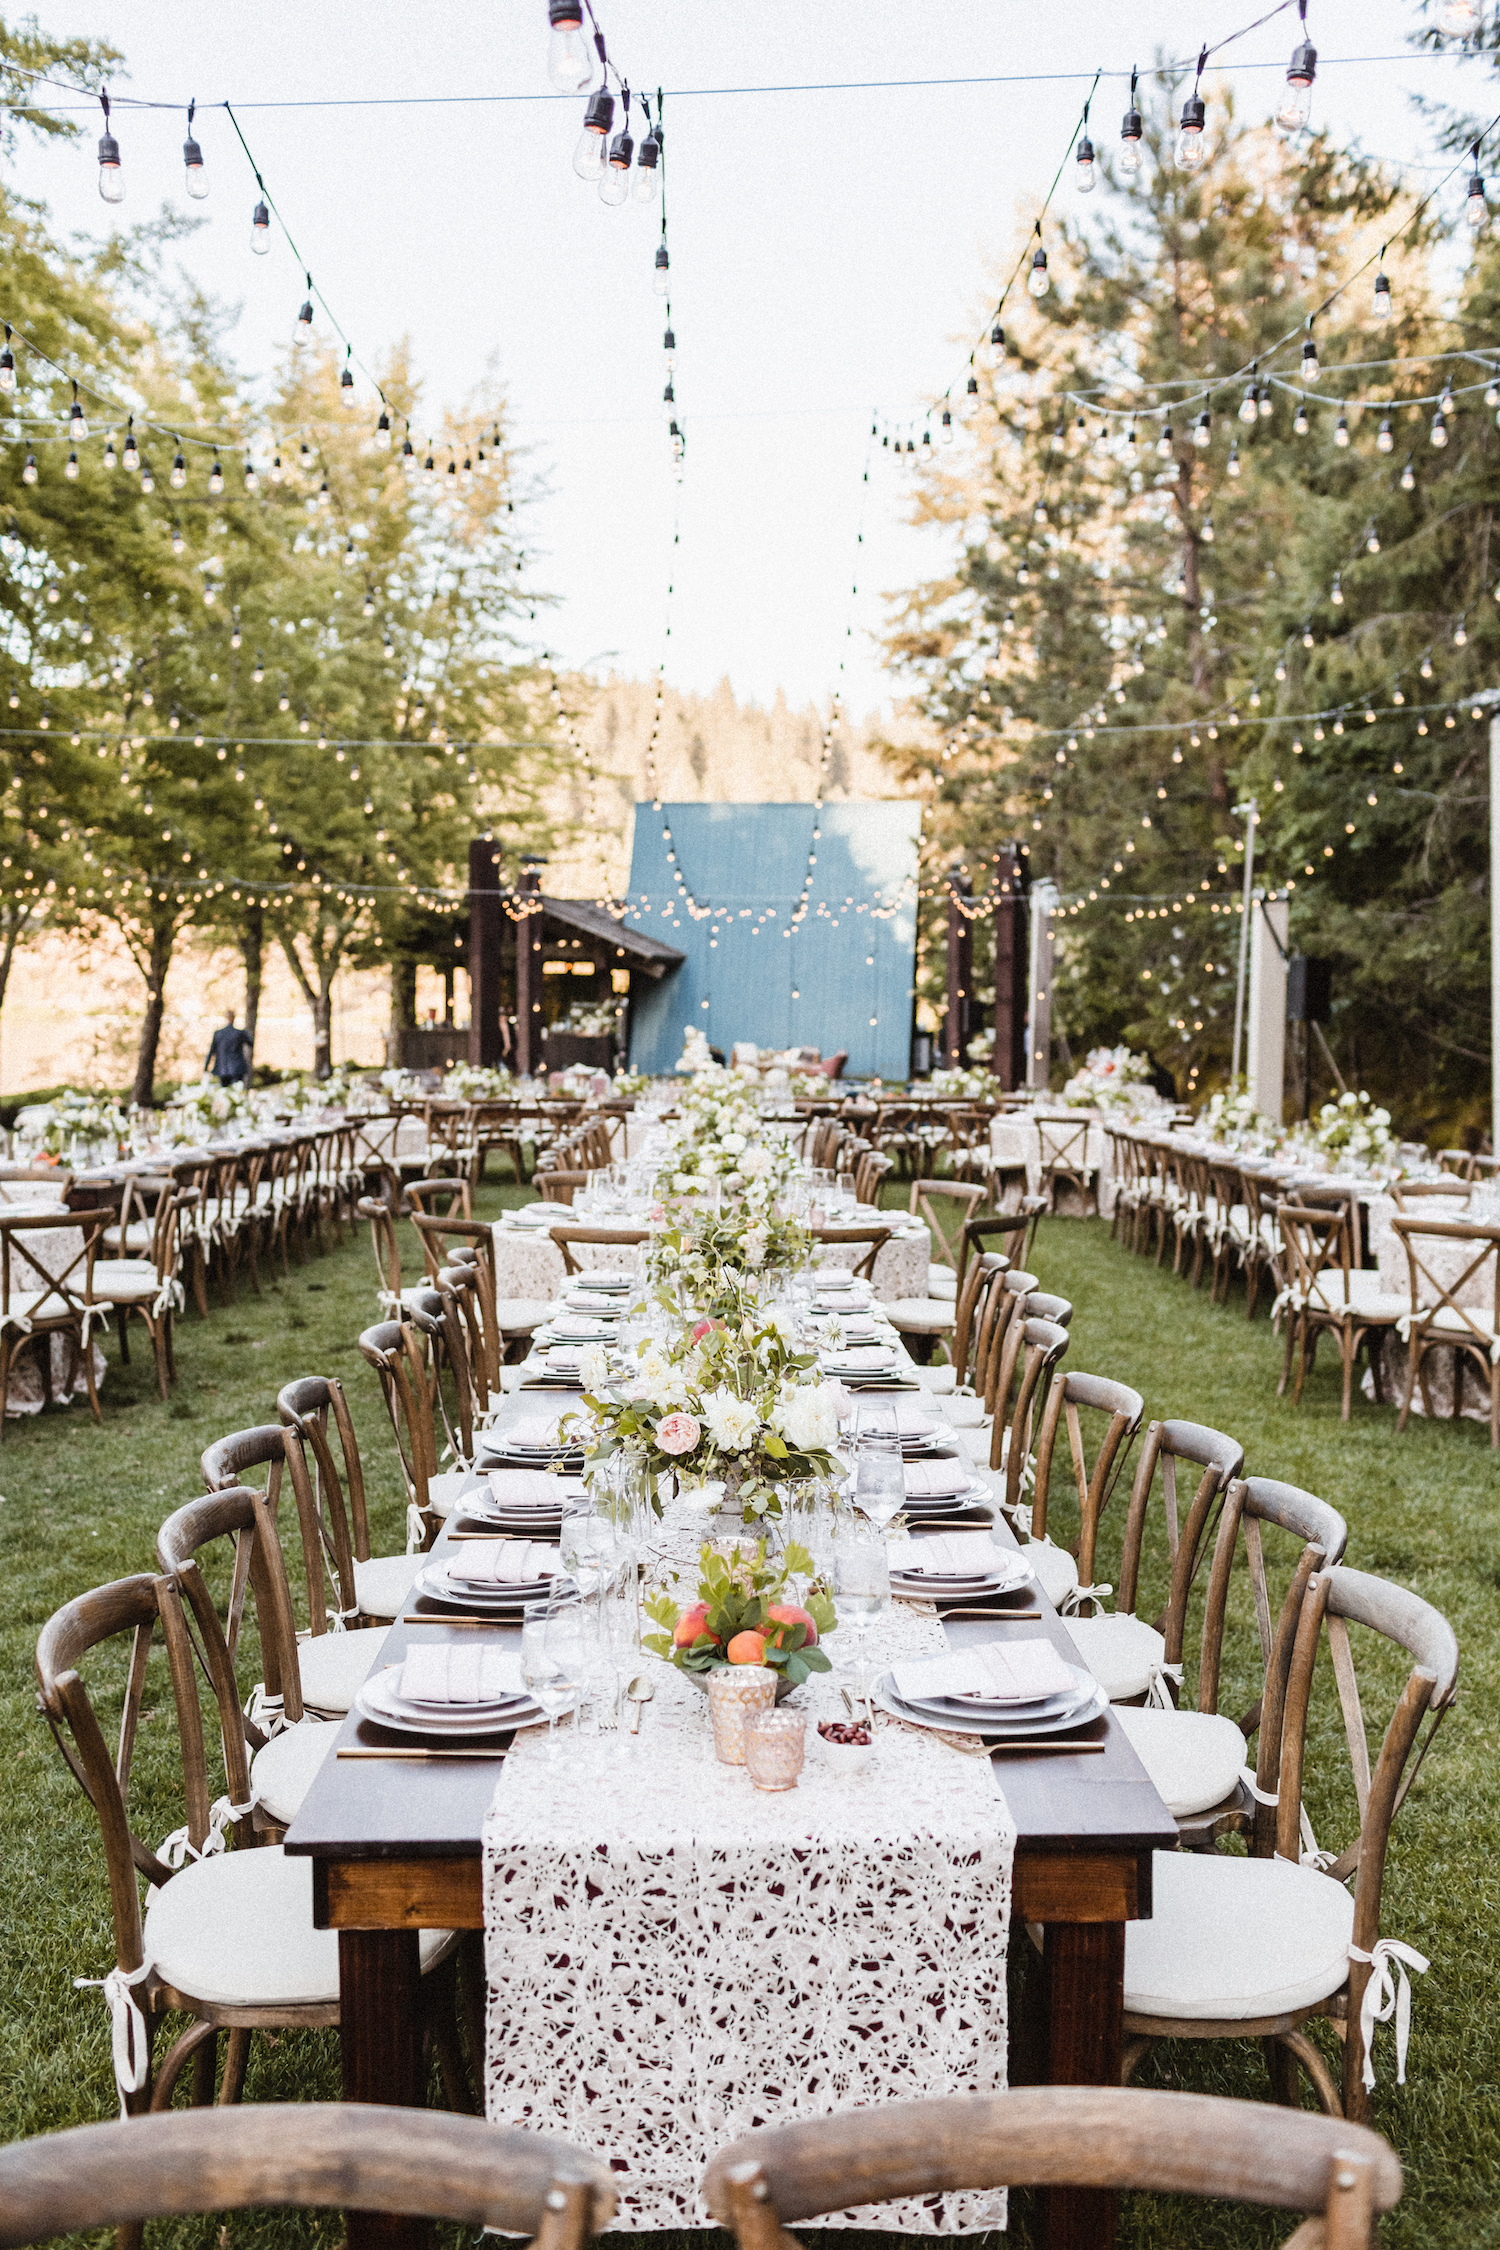 Julianne Hough and Brooks Laich Wedding - Wild Bloom Floral - Sarah Falugo Photography - Simply Troy Event Design 40.jpeg